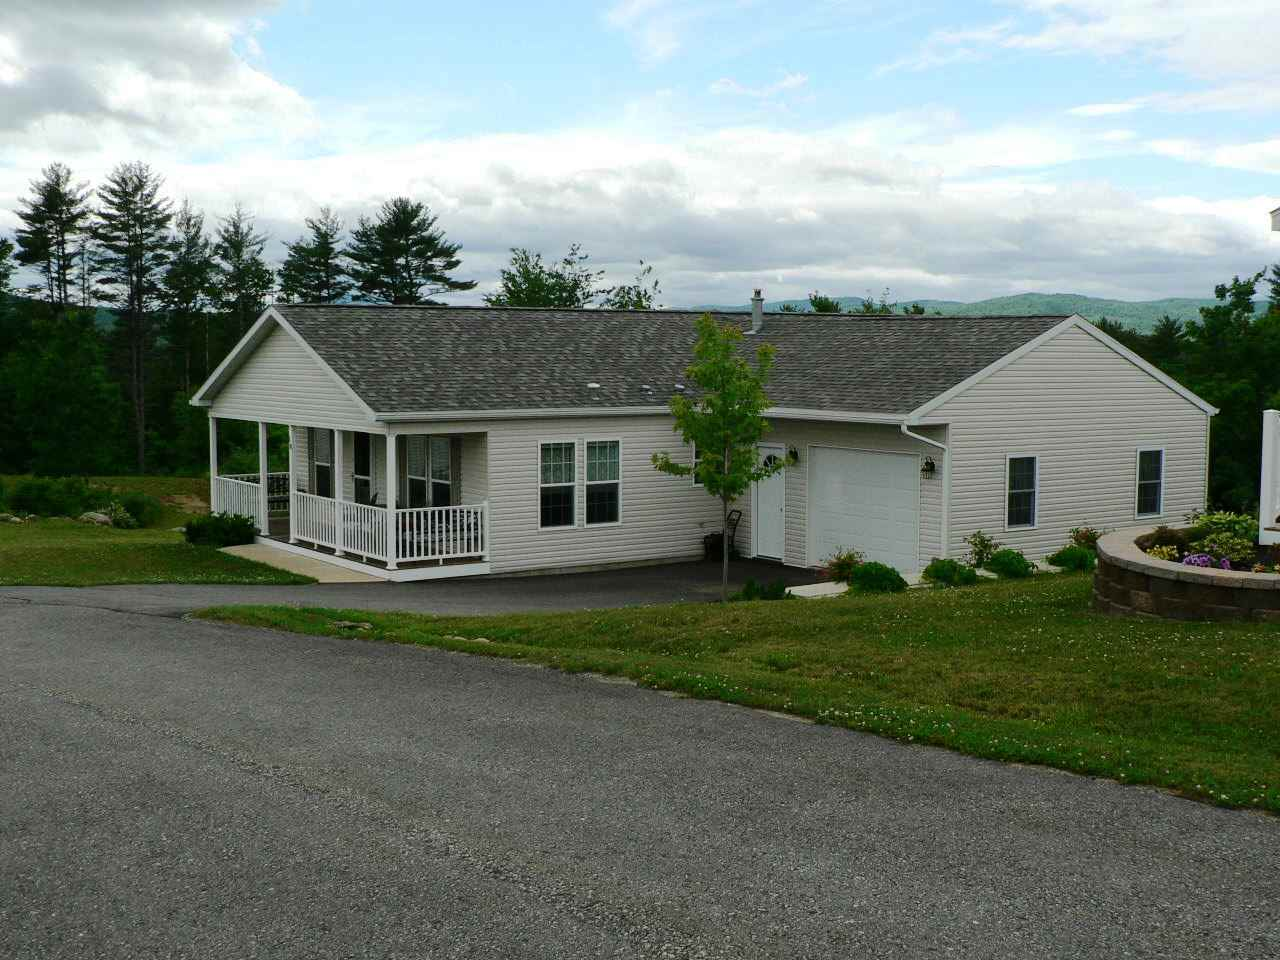 Photo of 18 Eagle Nest Drive Franklin NH 03235